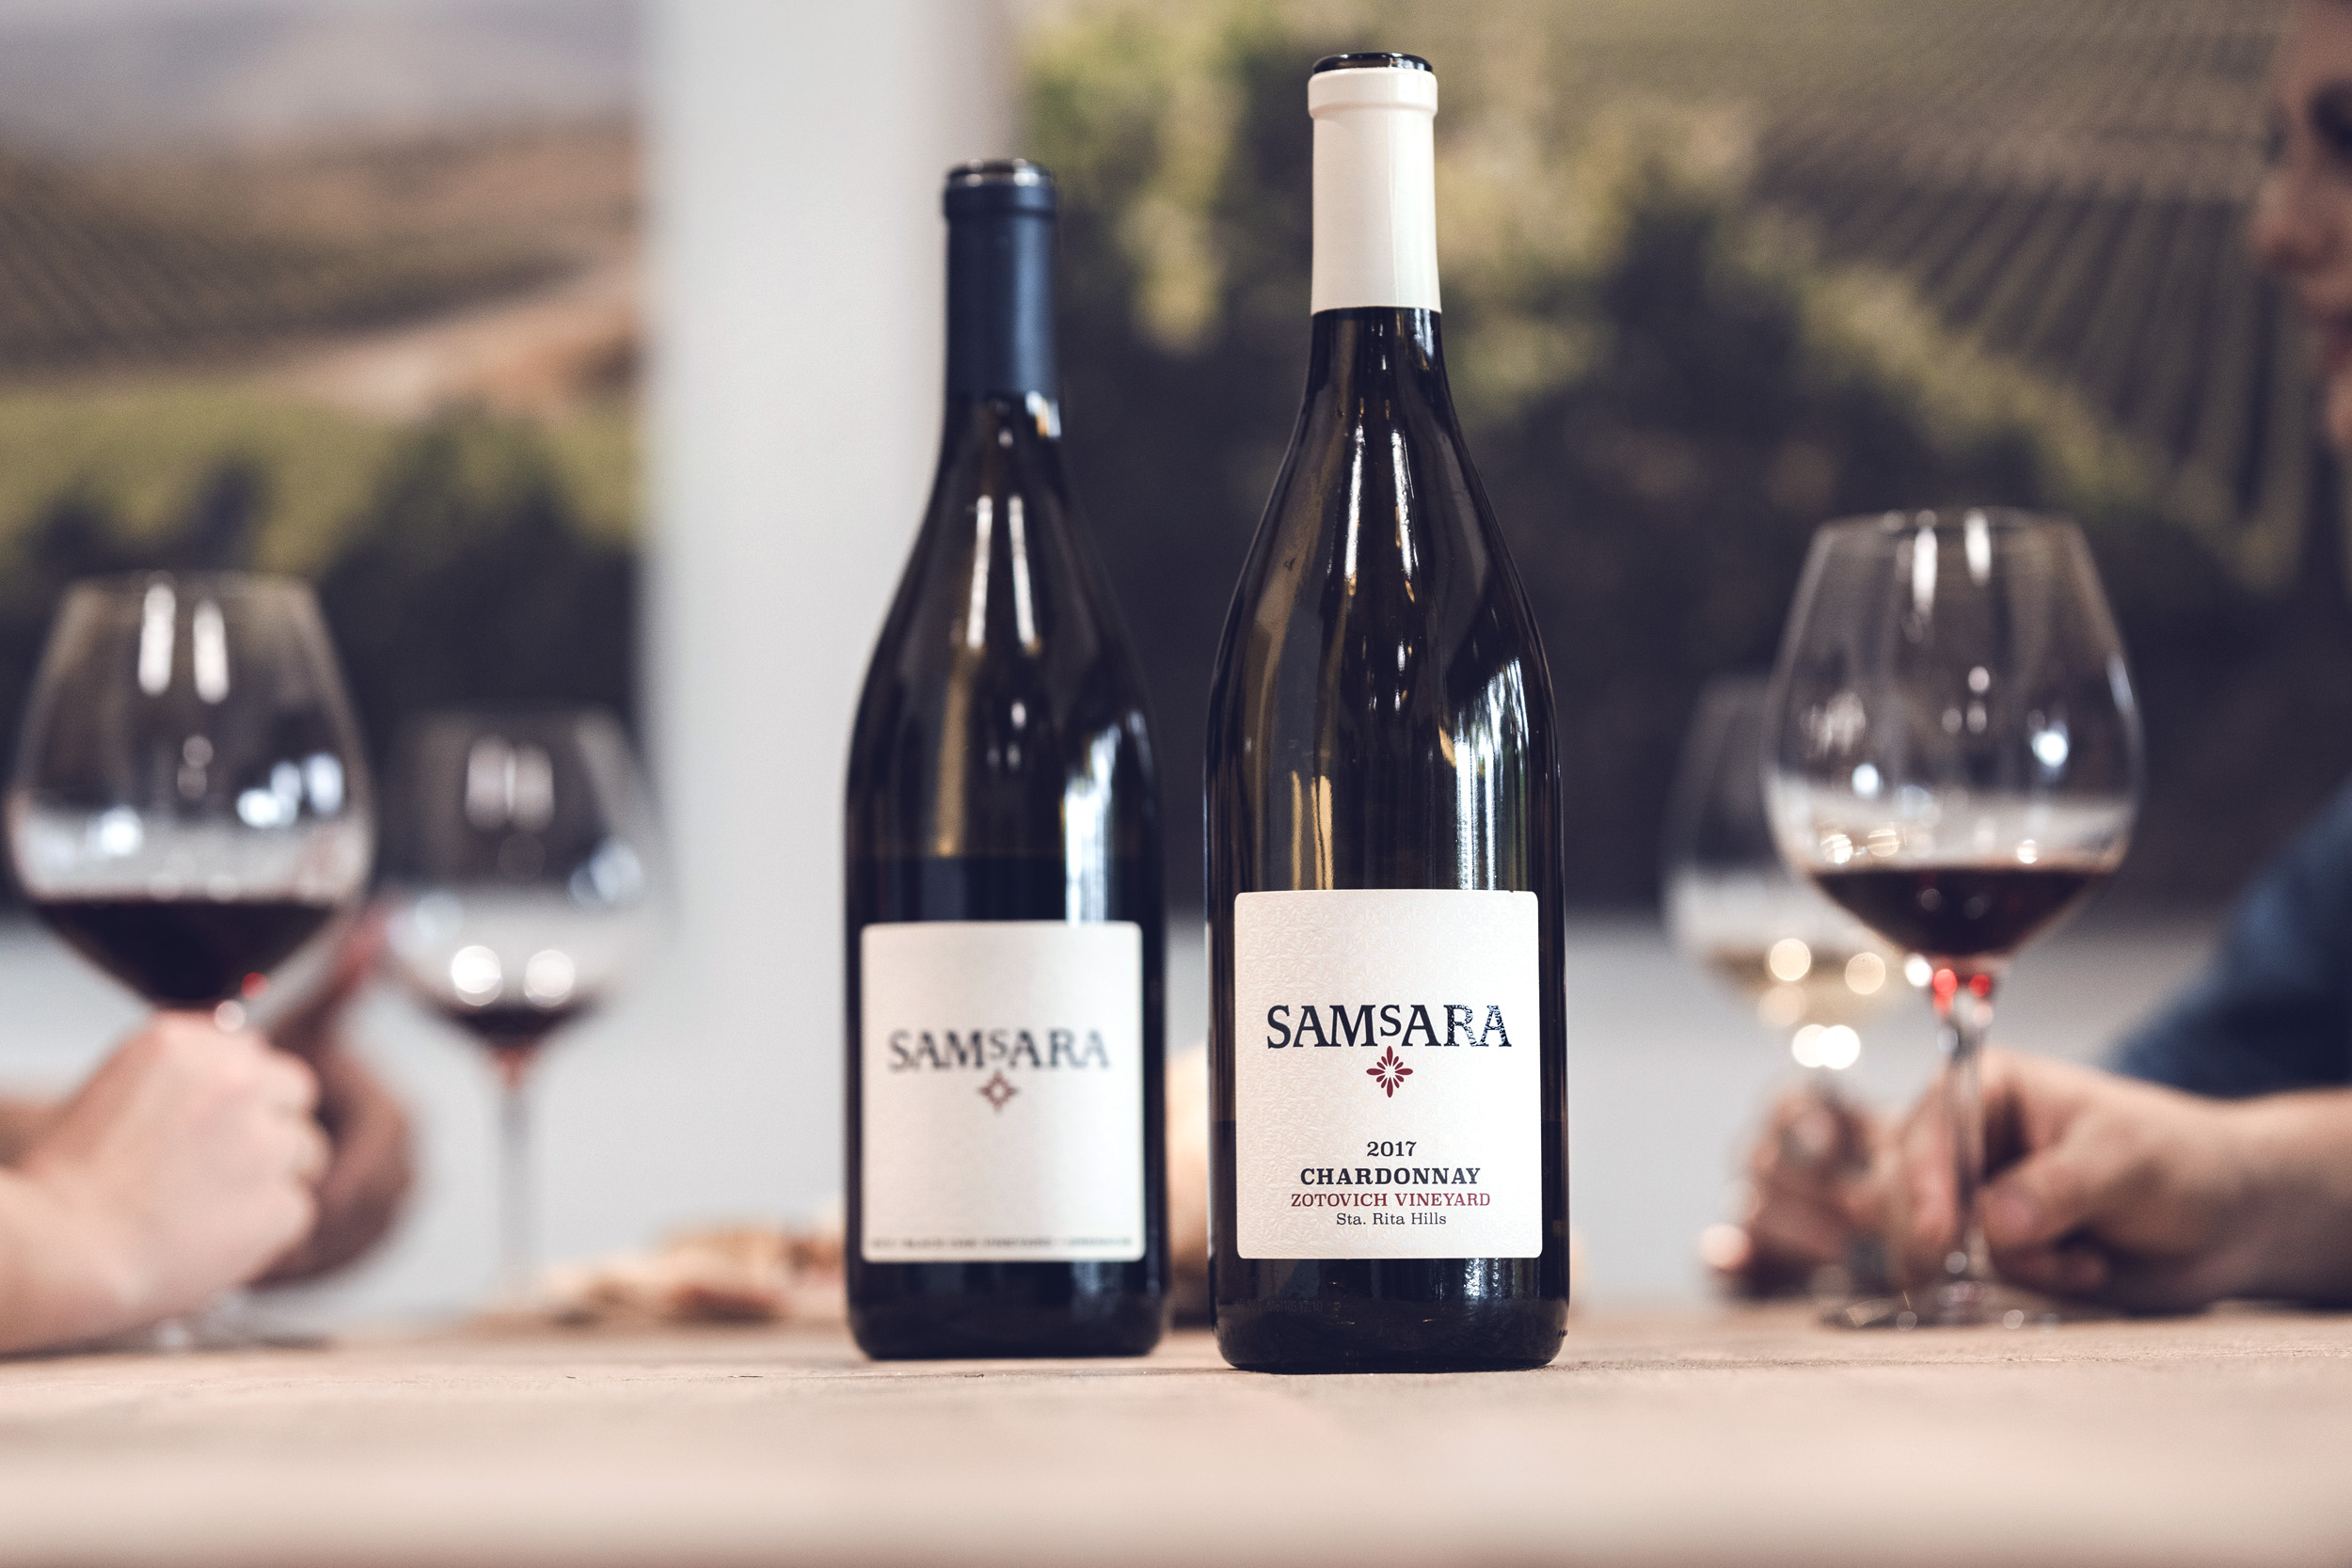 two bottles of SAMsARA wine in Goleta tasting room table